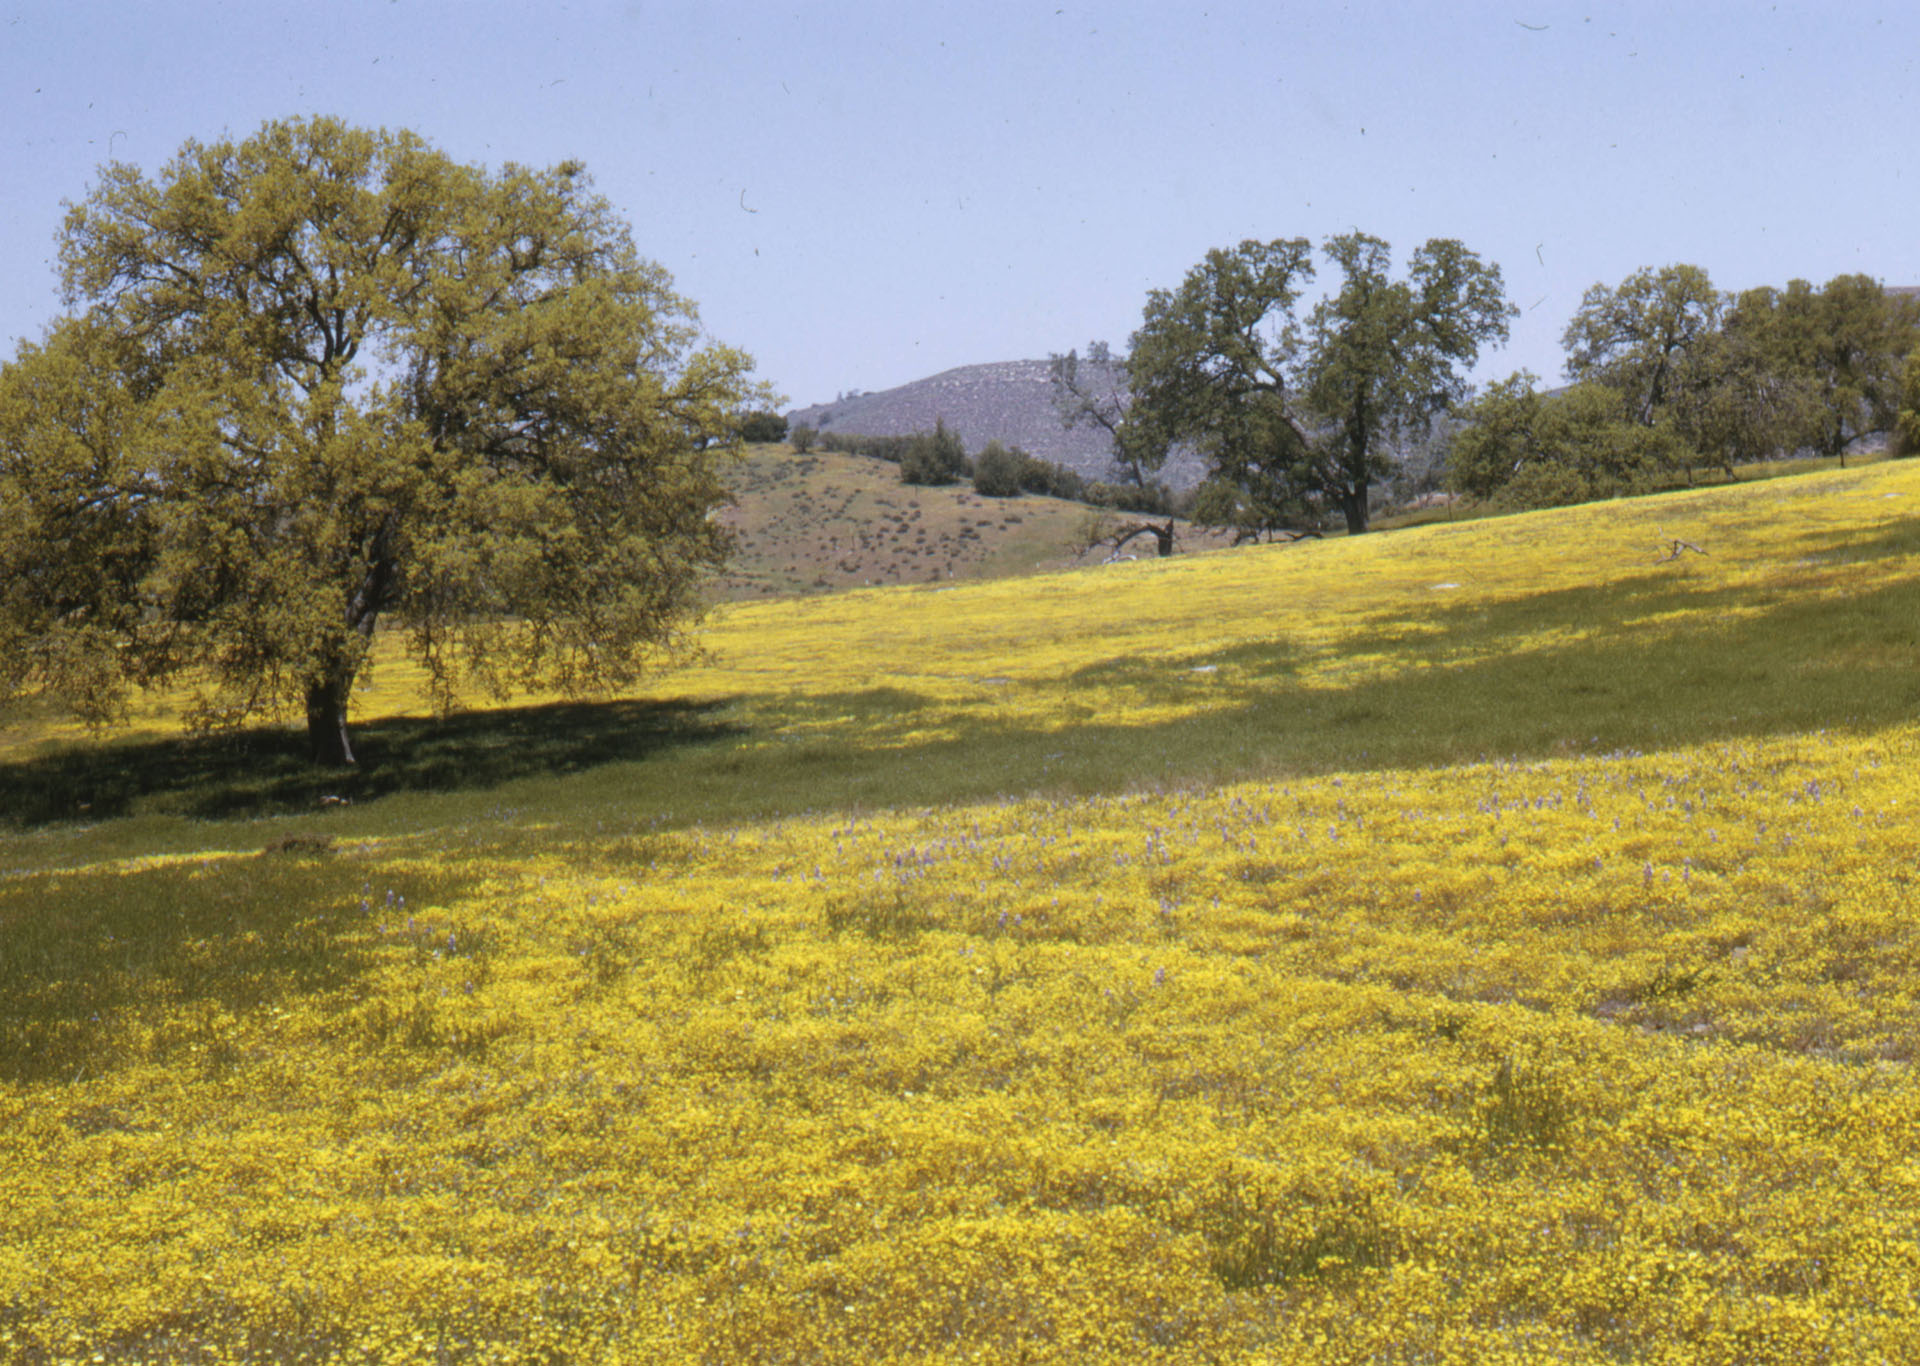 Relict wildflower fields survive. This photo shows California goldfields in San Luis Obispo County. Courtesy of the Larry Oglesby Collection, Claremont Colleges Digital Library.